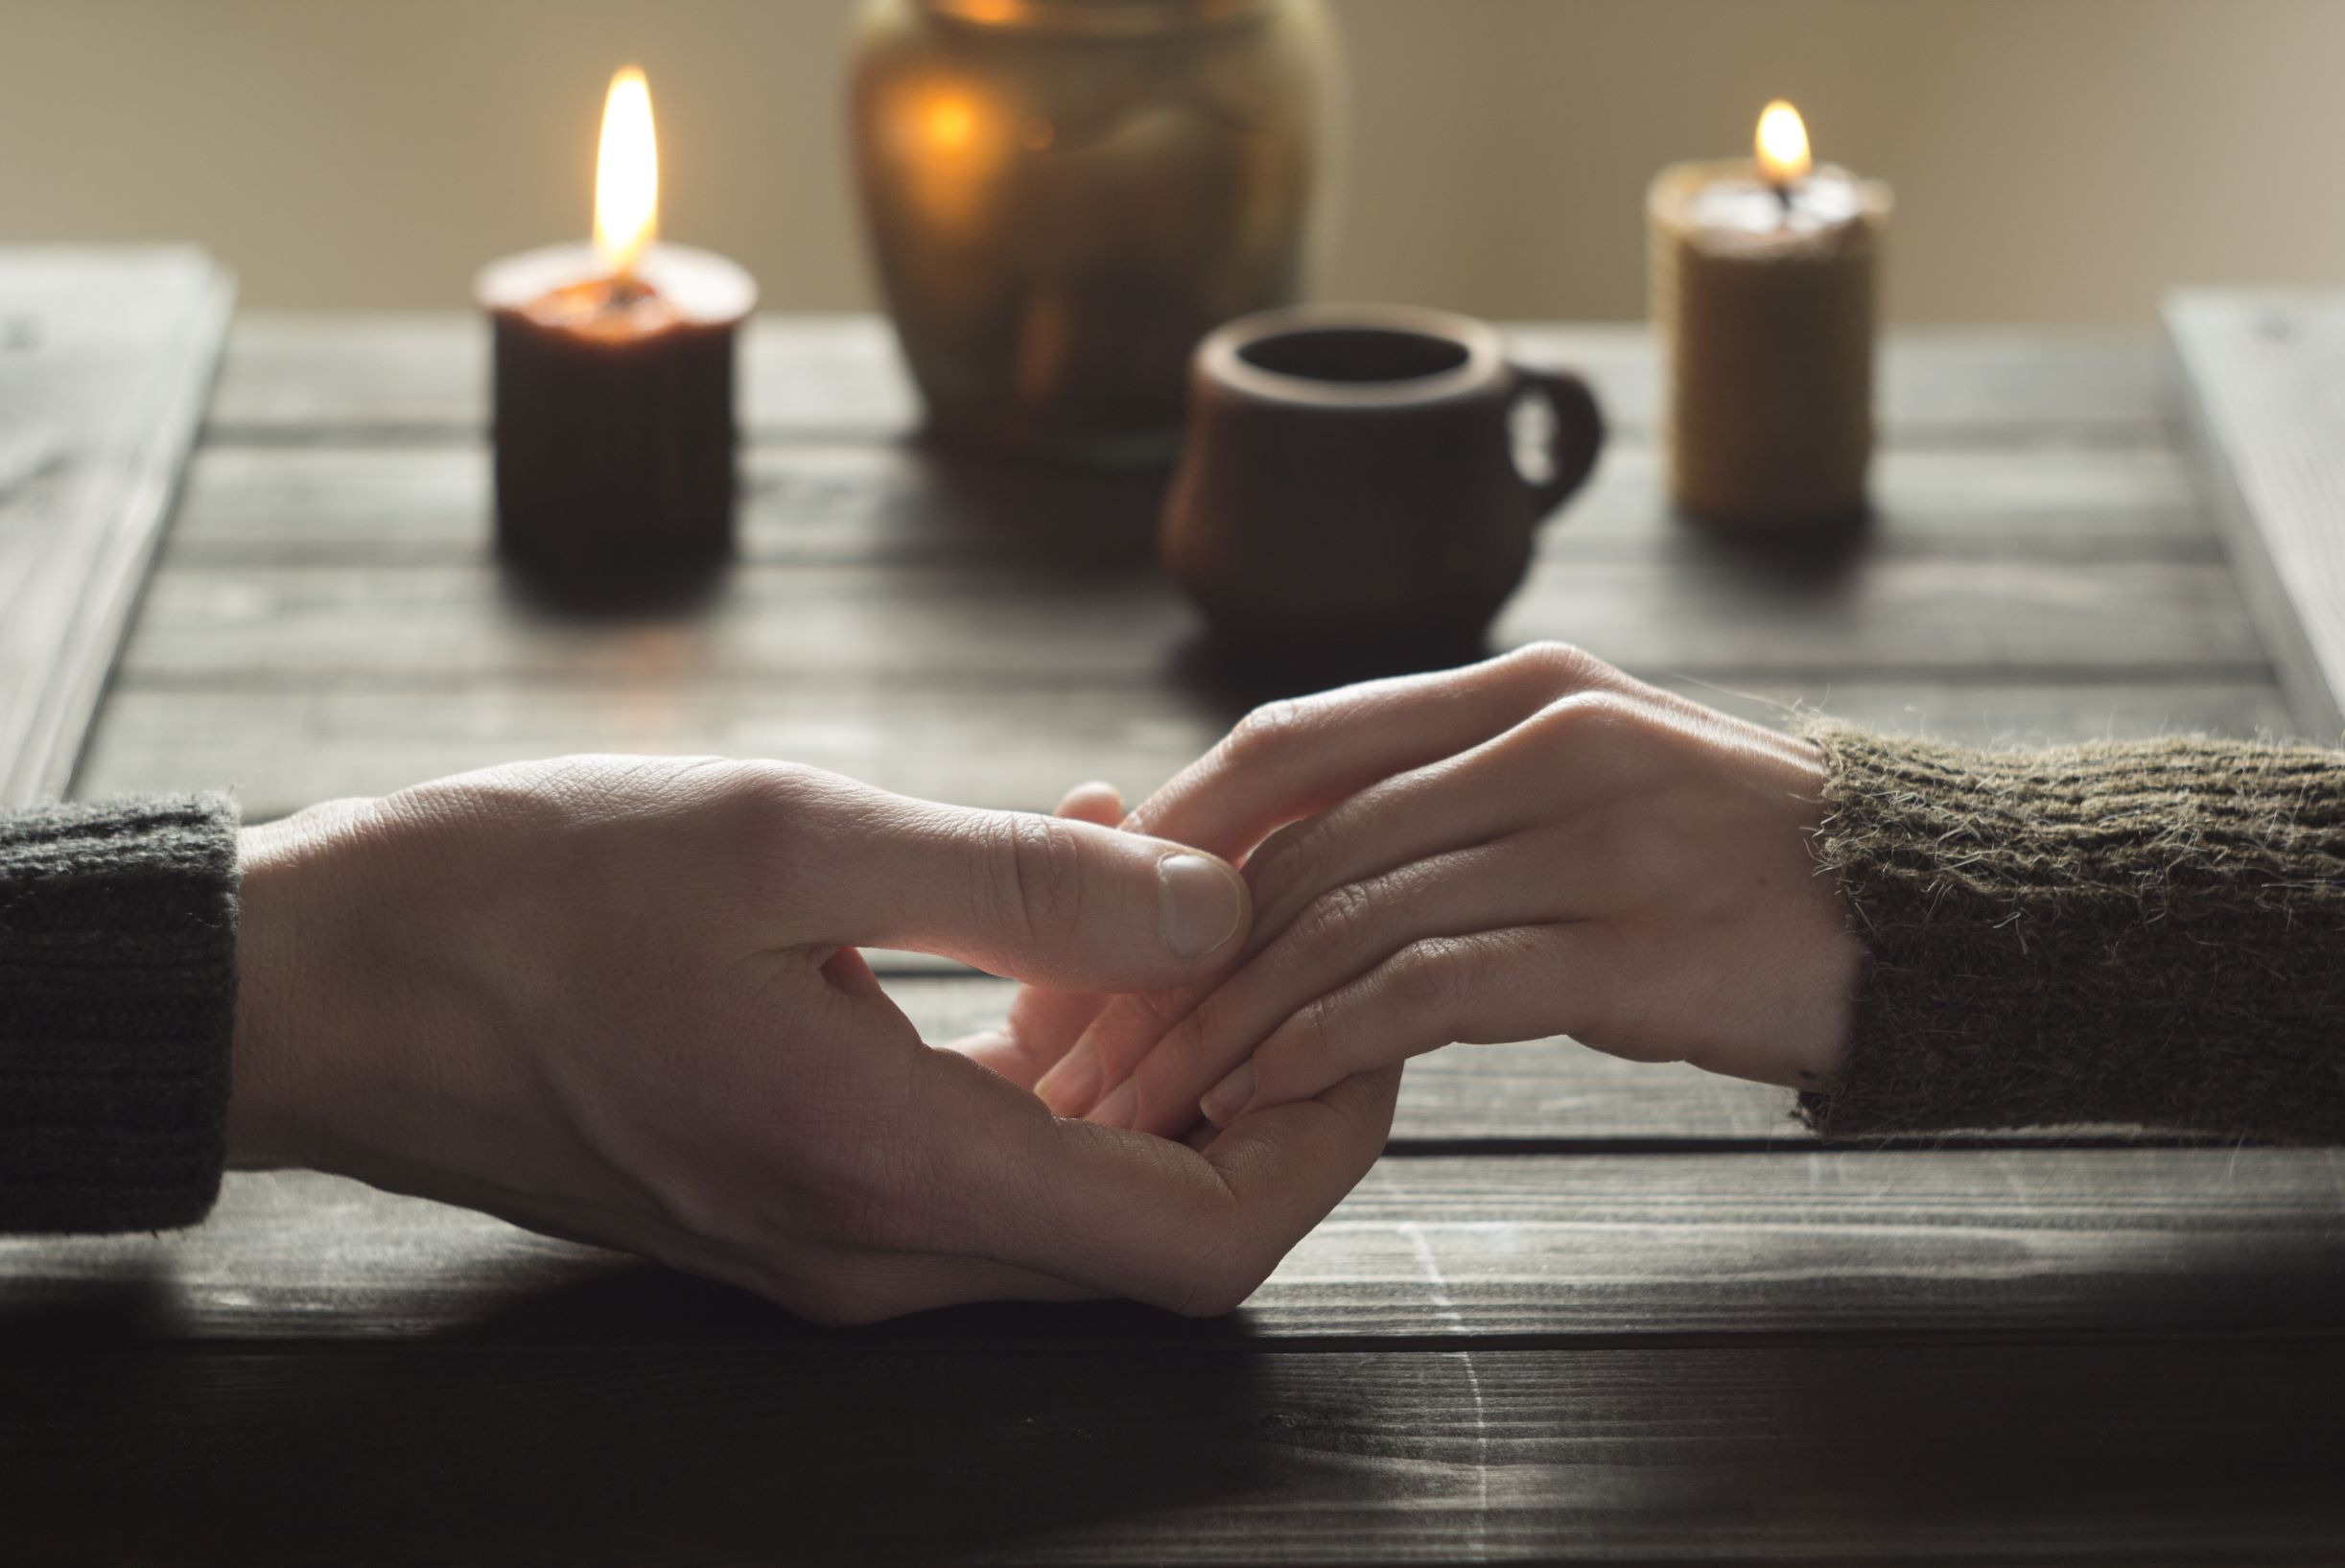 couple holding hands on table with lit candles.jpeg